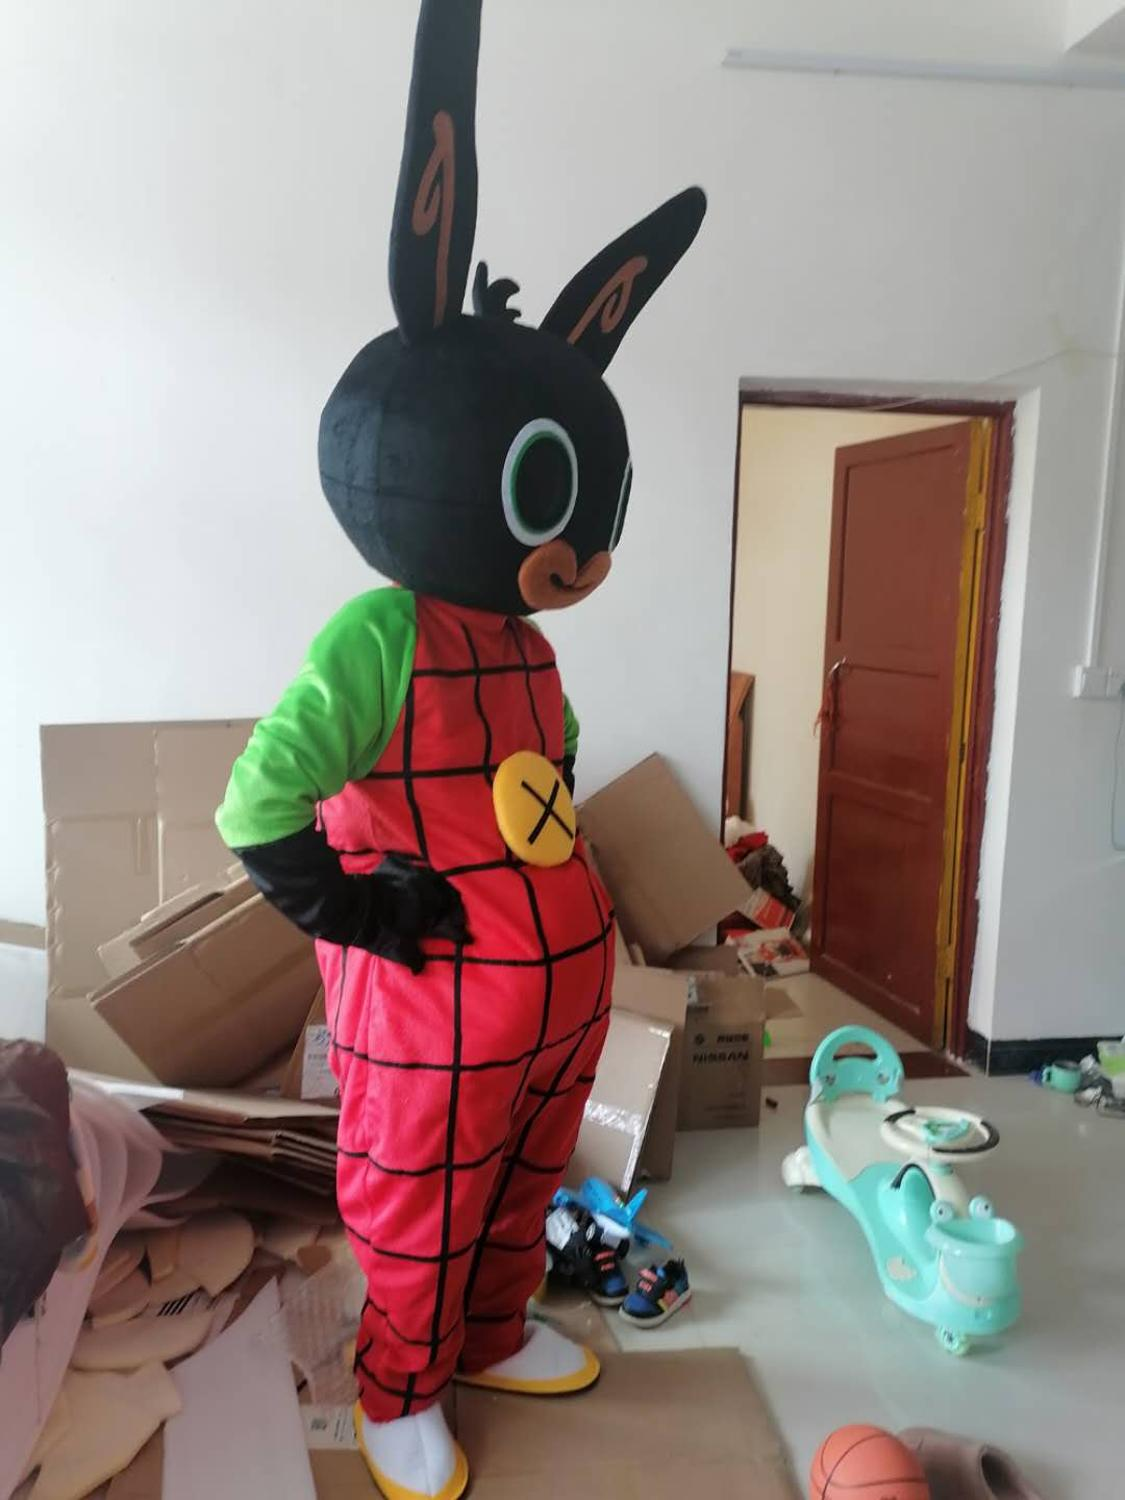 New Bing Bunny Mascot Extremely Costume Rabbit Animal Dress Party Adult Clothing